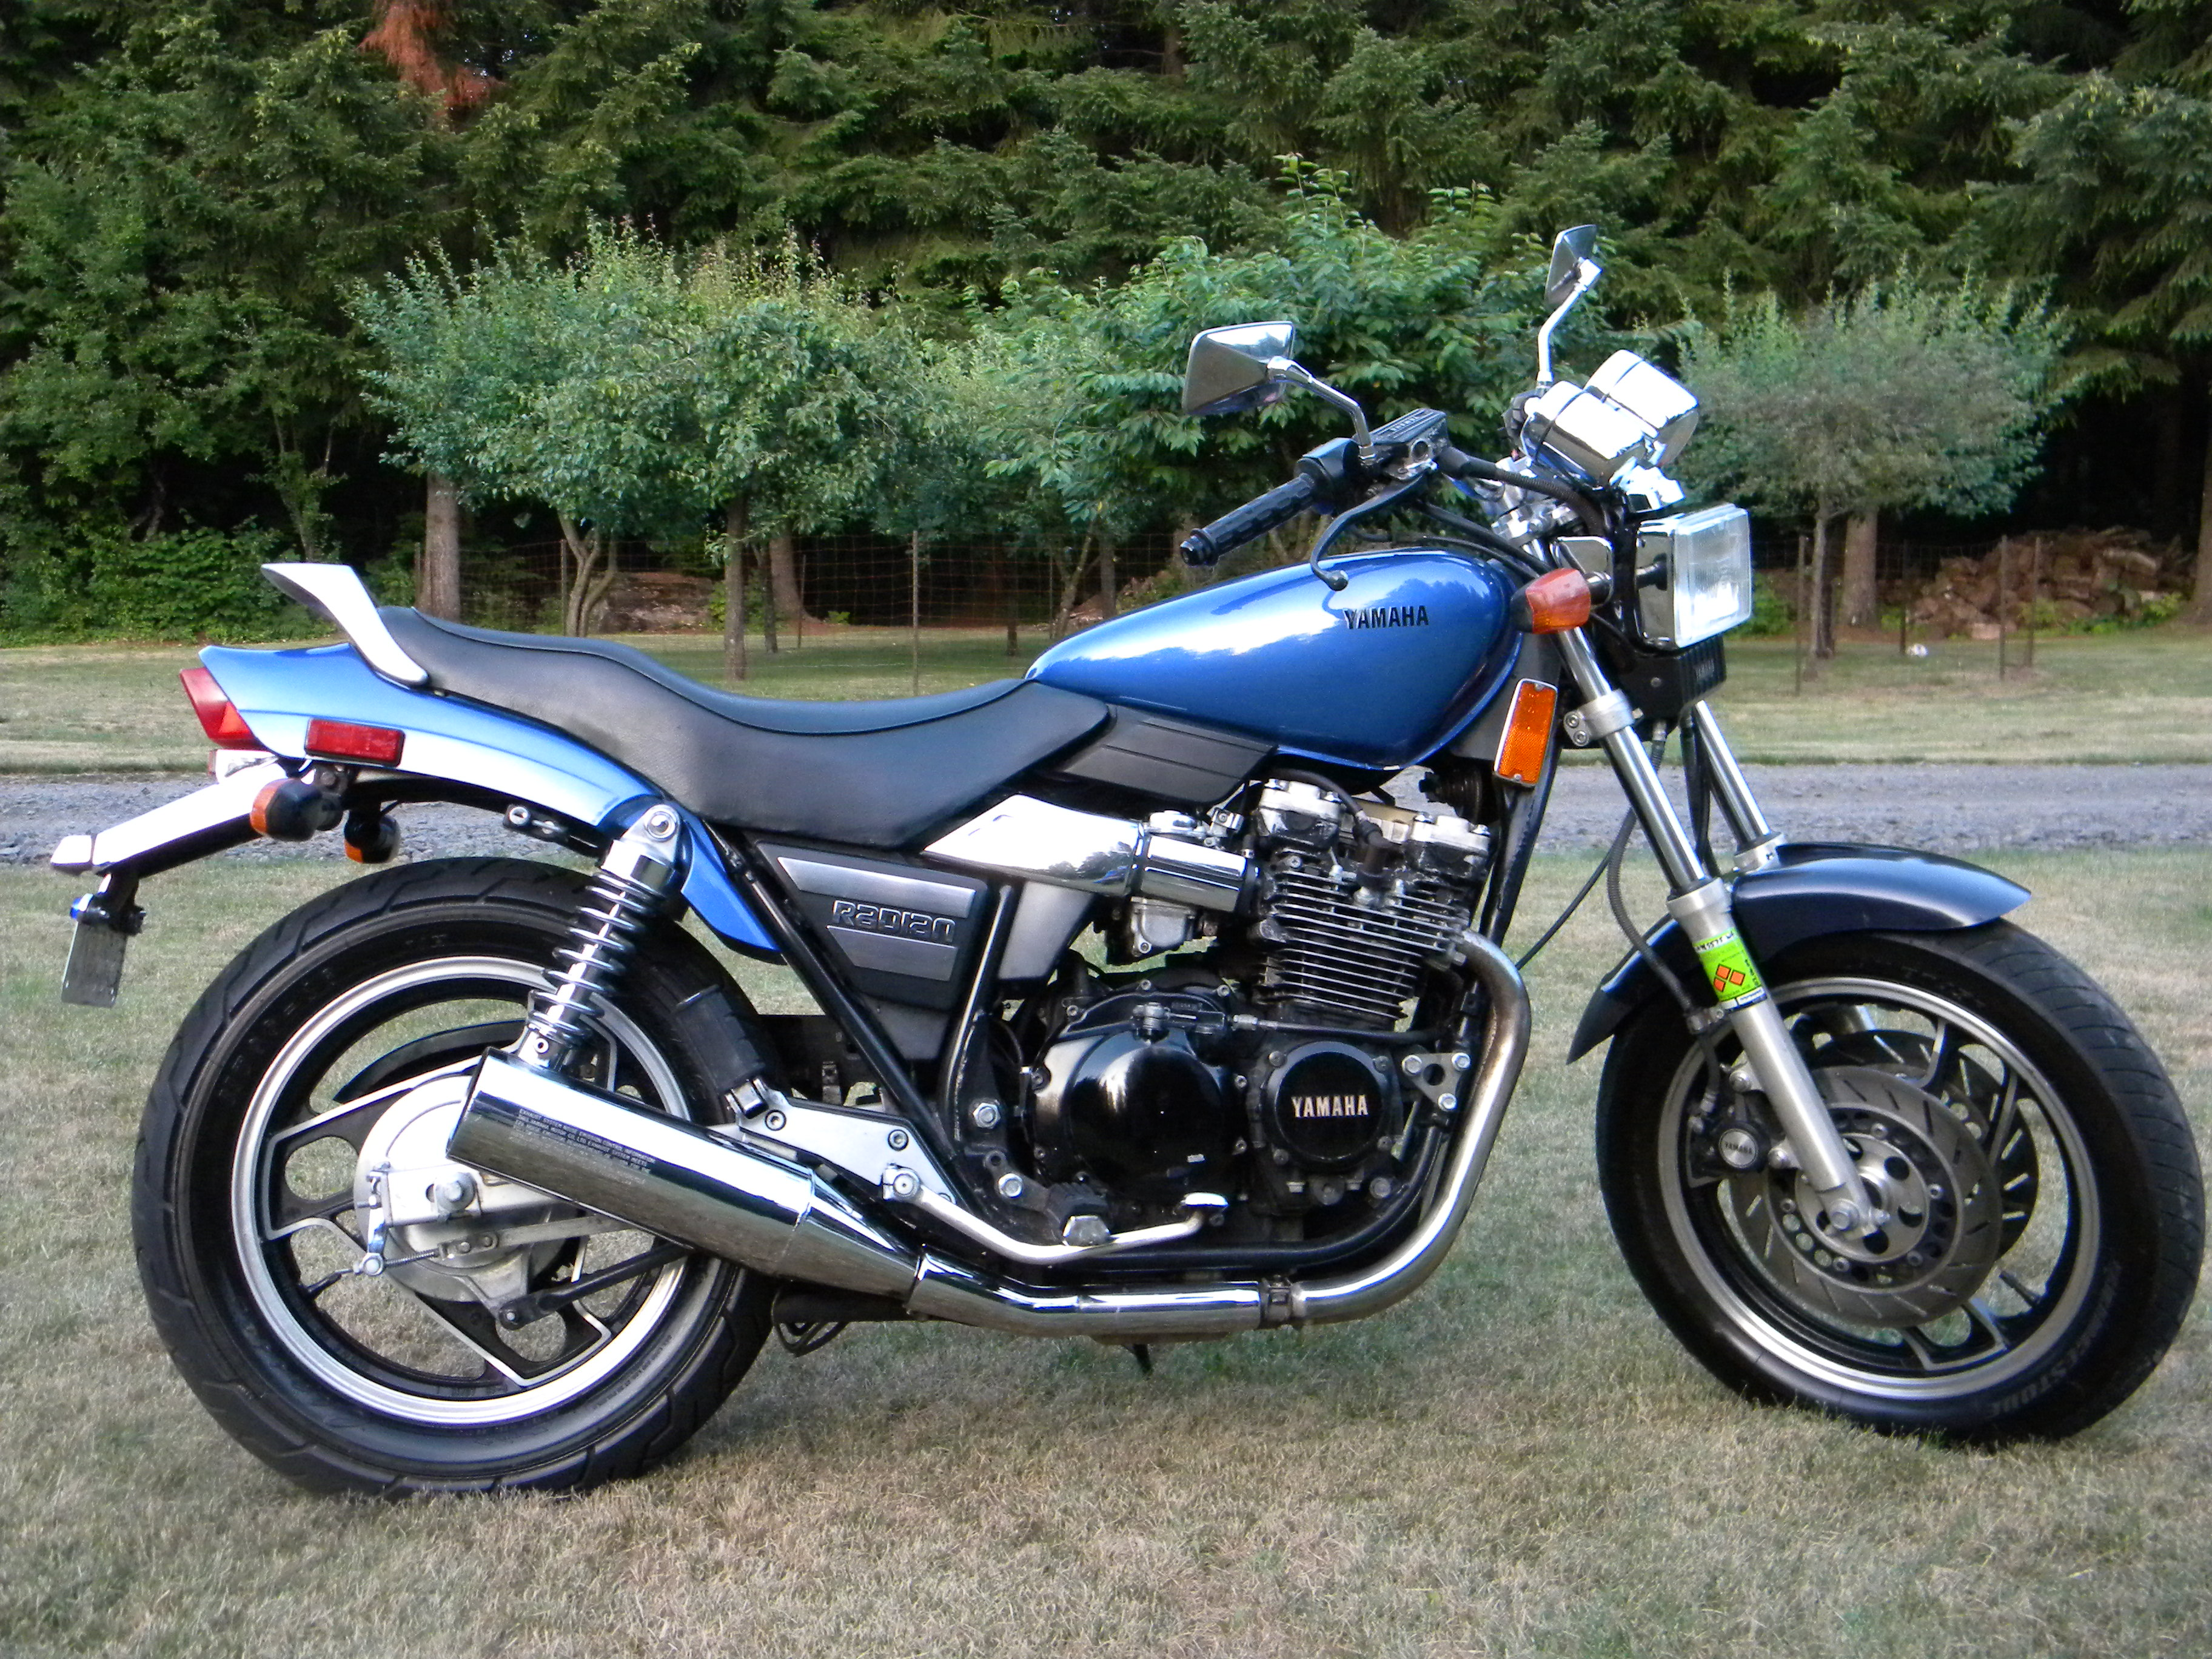 Yamaha XS 400 DOHC (reduced effect) 1982 #7